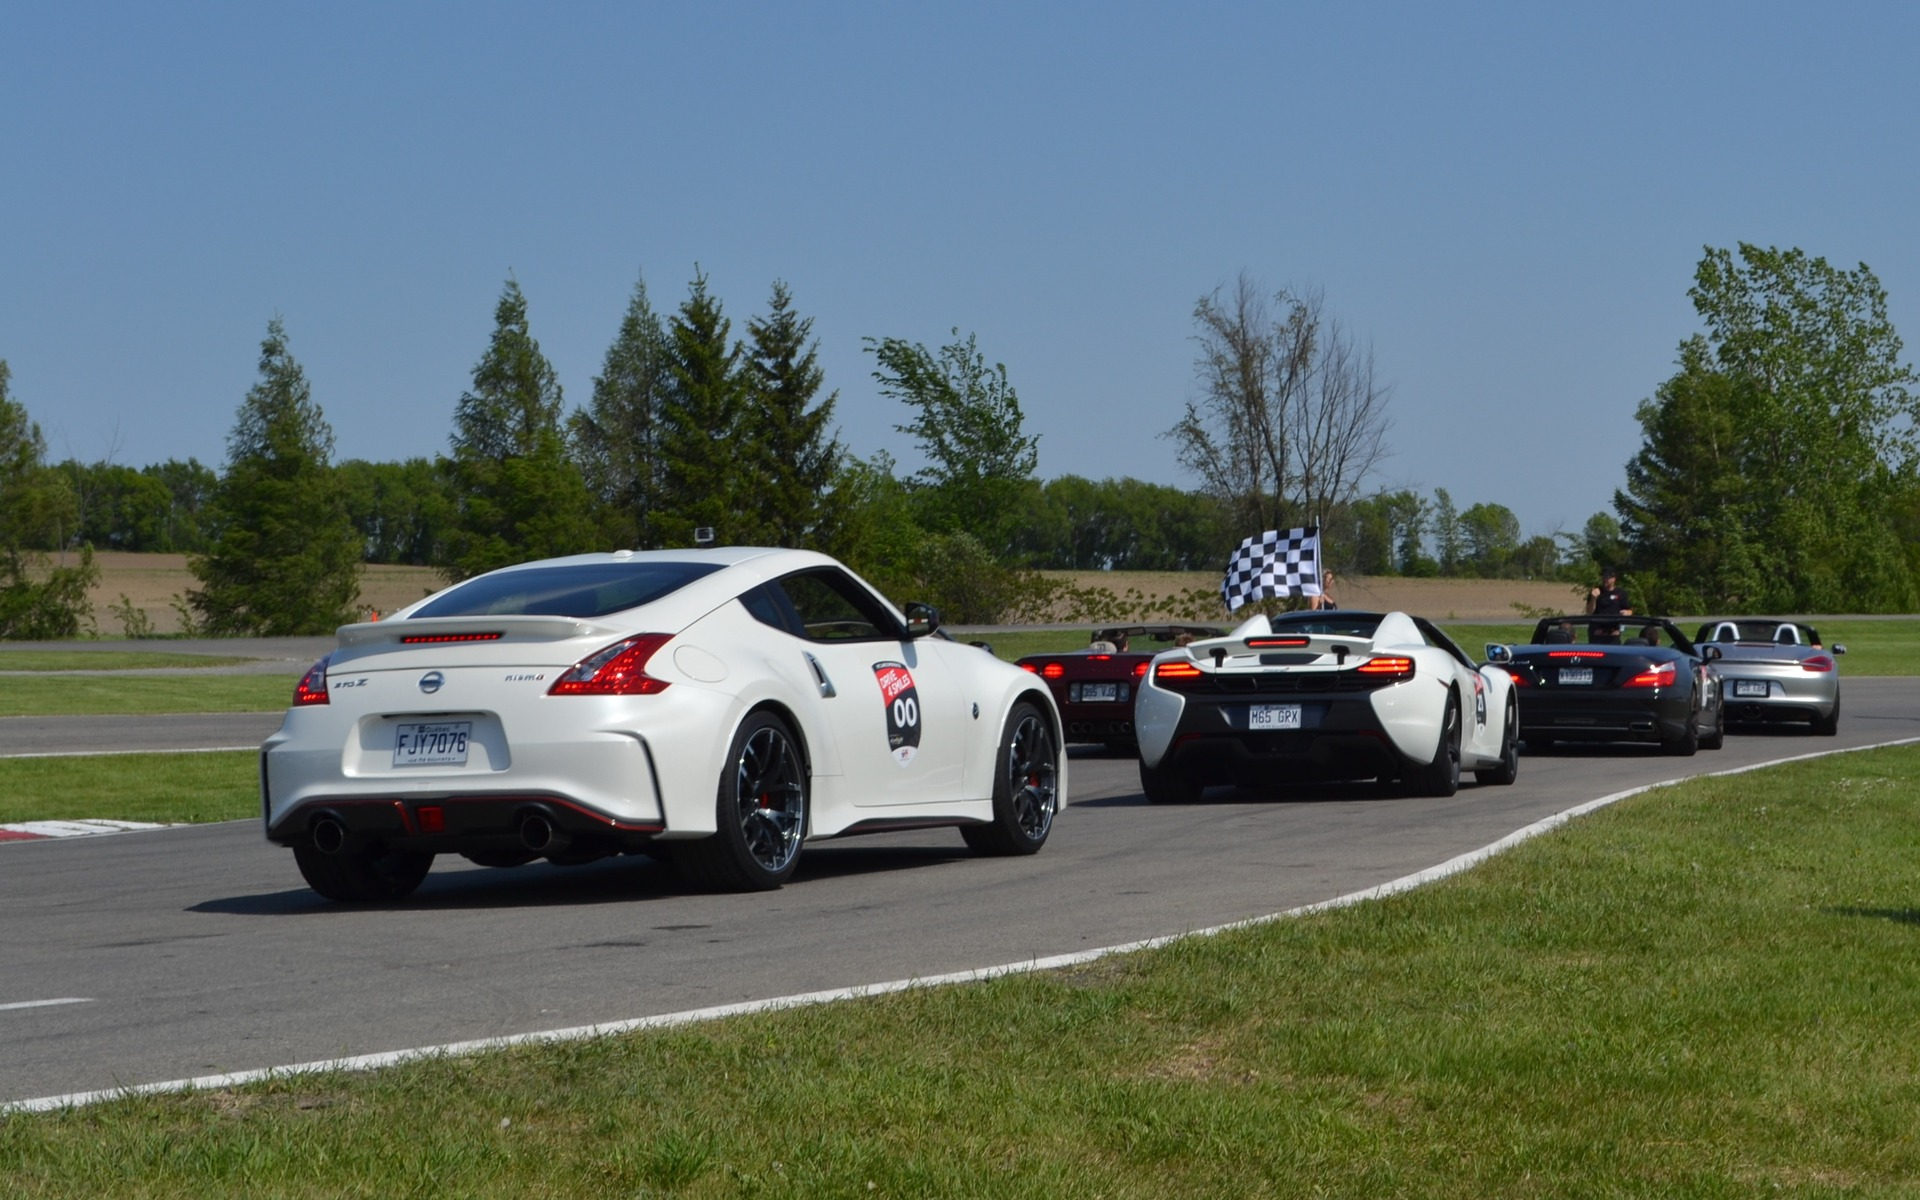 Our Nissan 370Z Nismo.